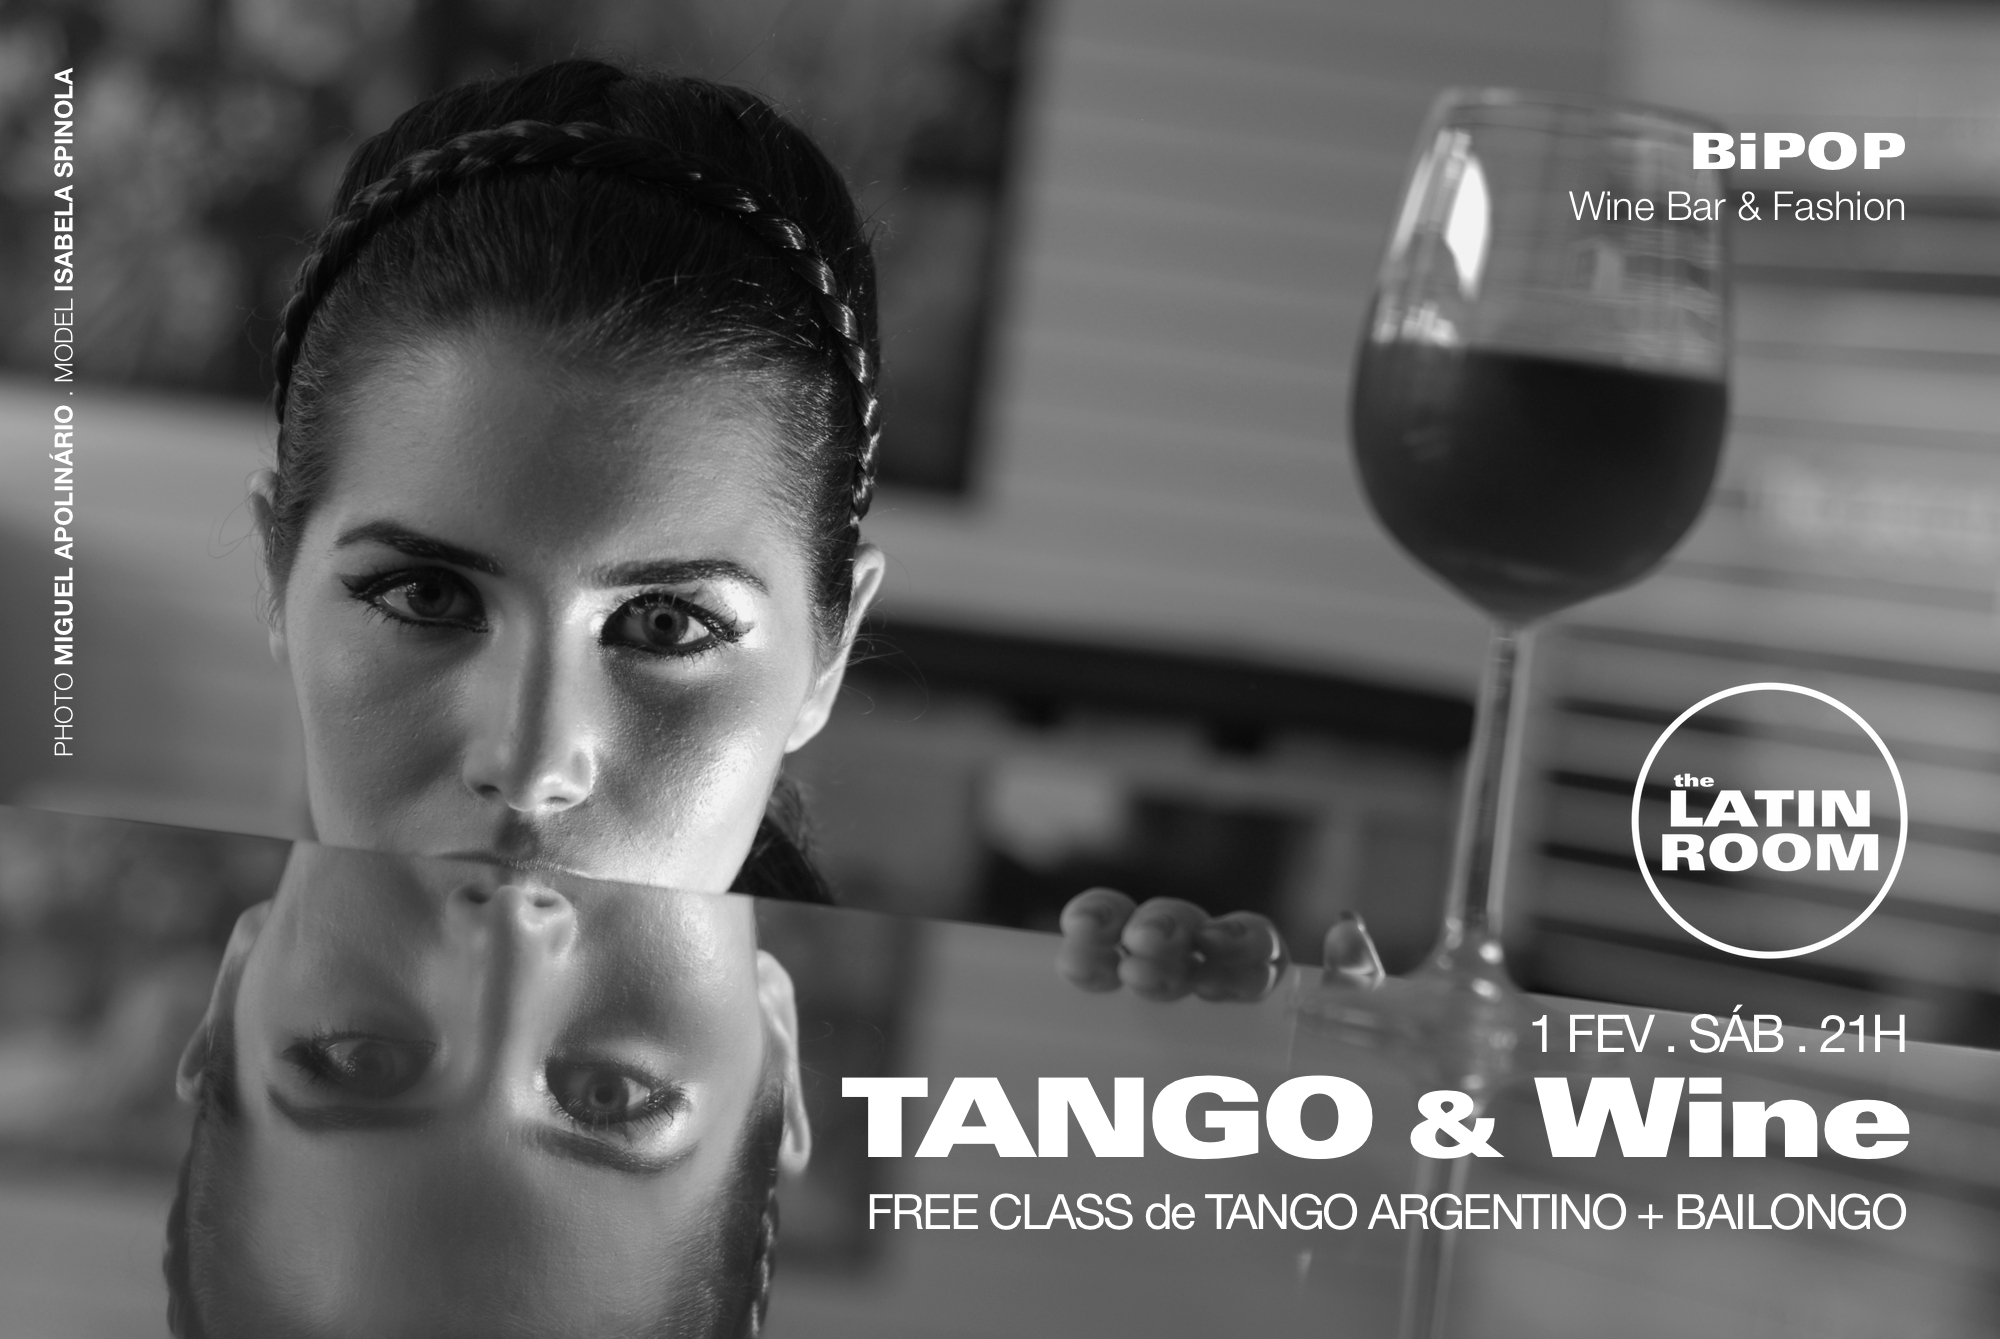 Aula Aberta de TANGO ARGENTINO - BiPOP Wine & Fashion by The Latin Room